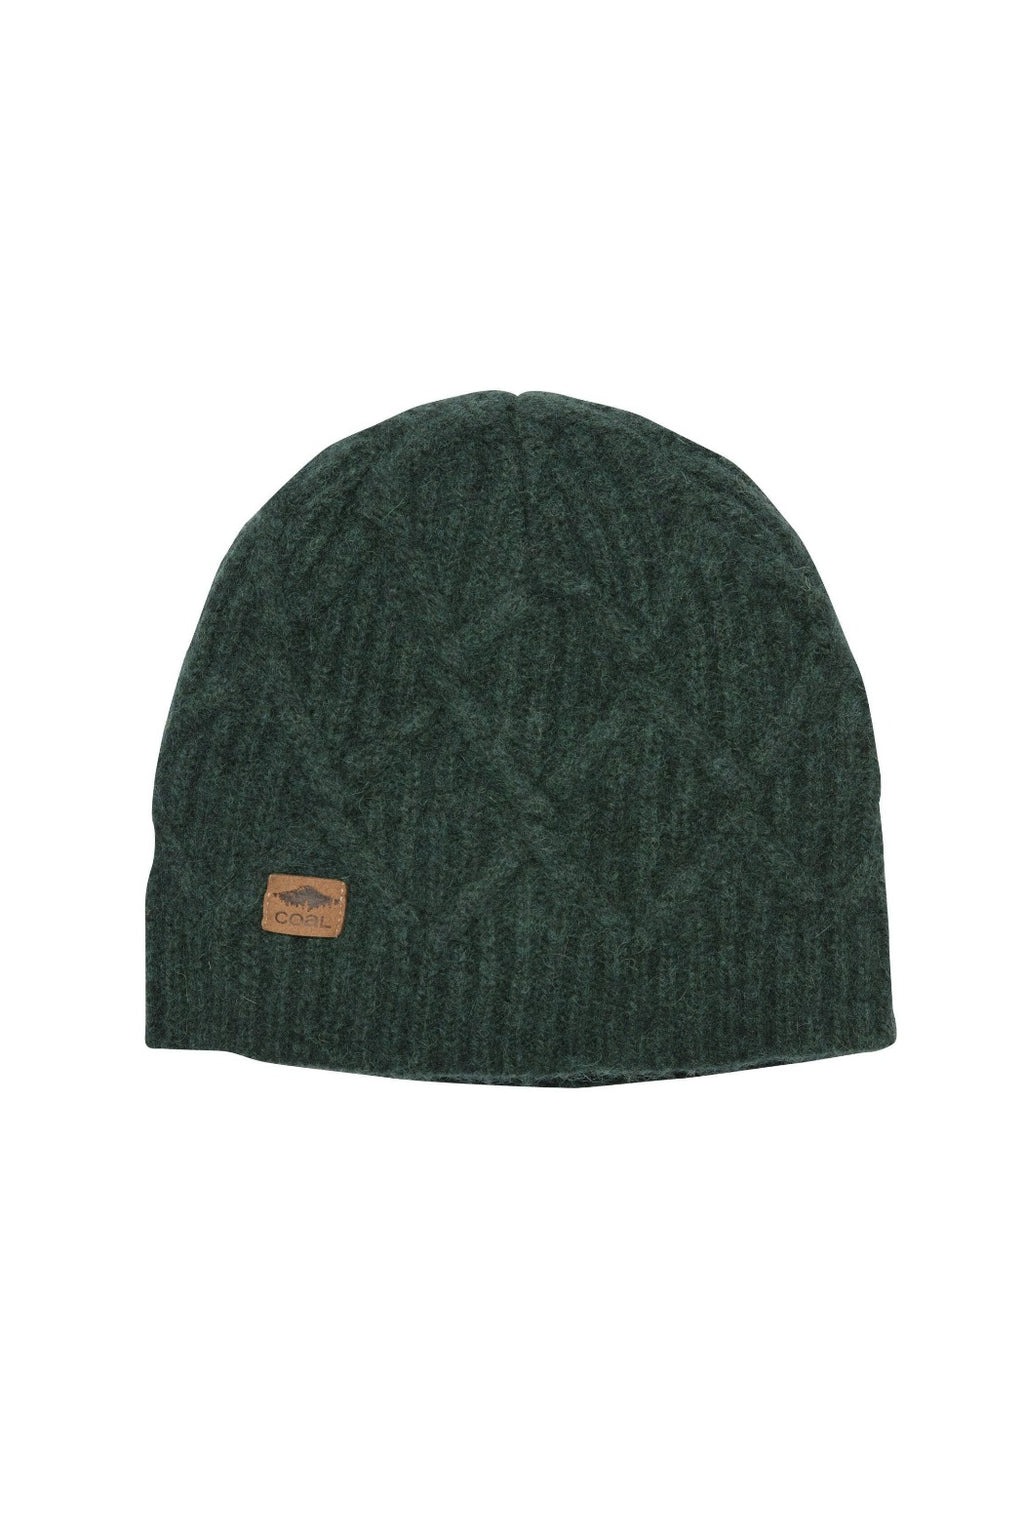 Coal Yukon Cable Knit Beanie - Heather Forest Green